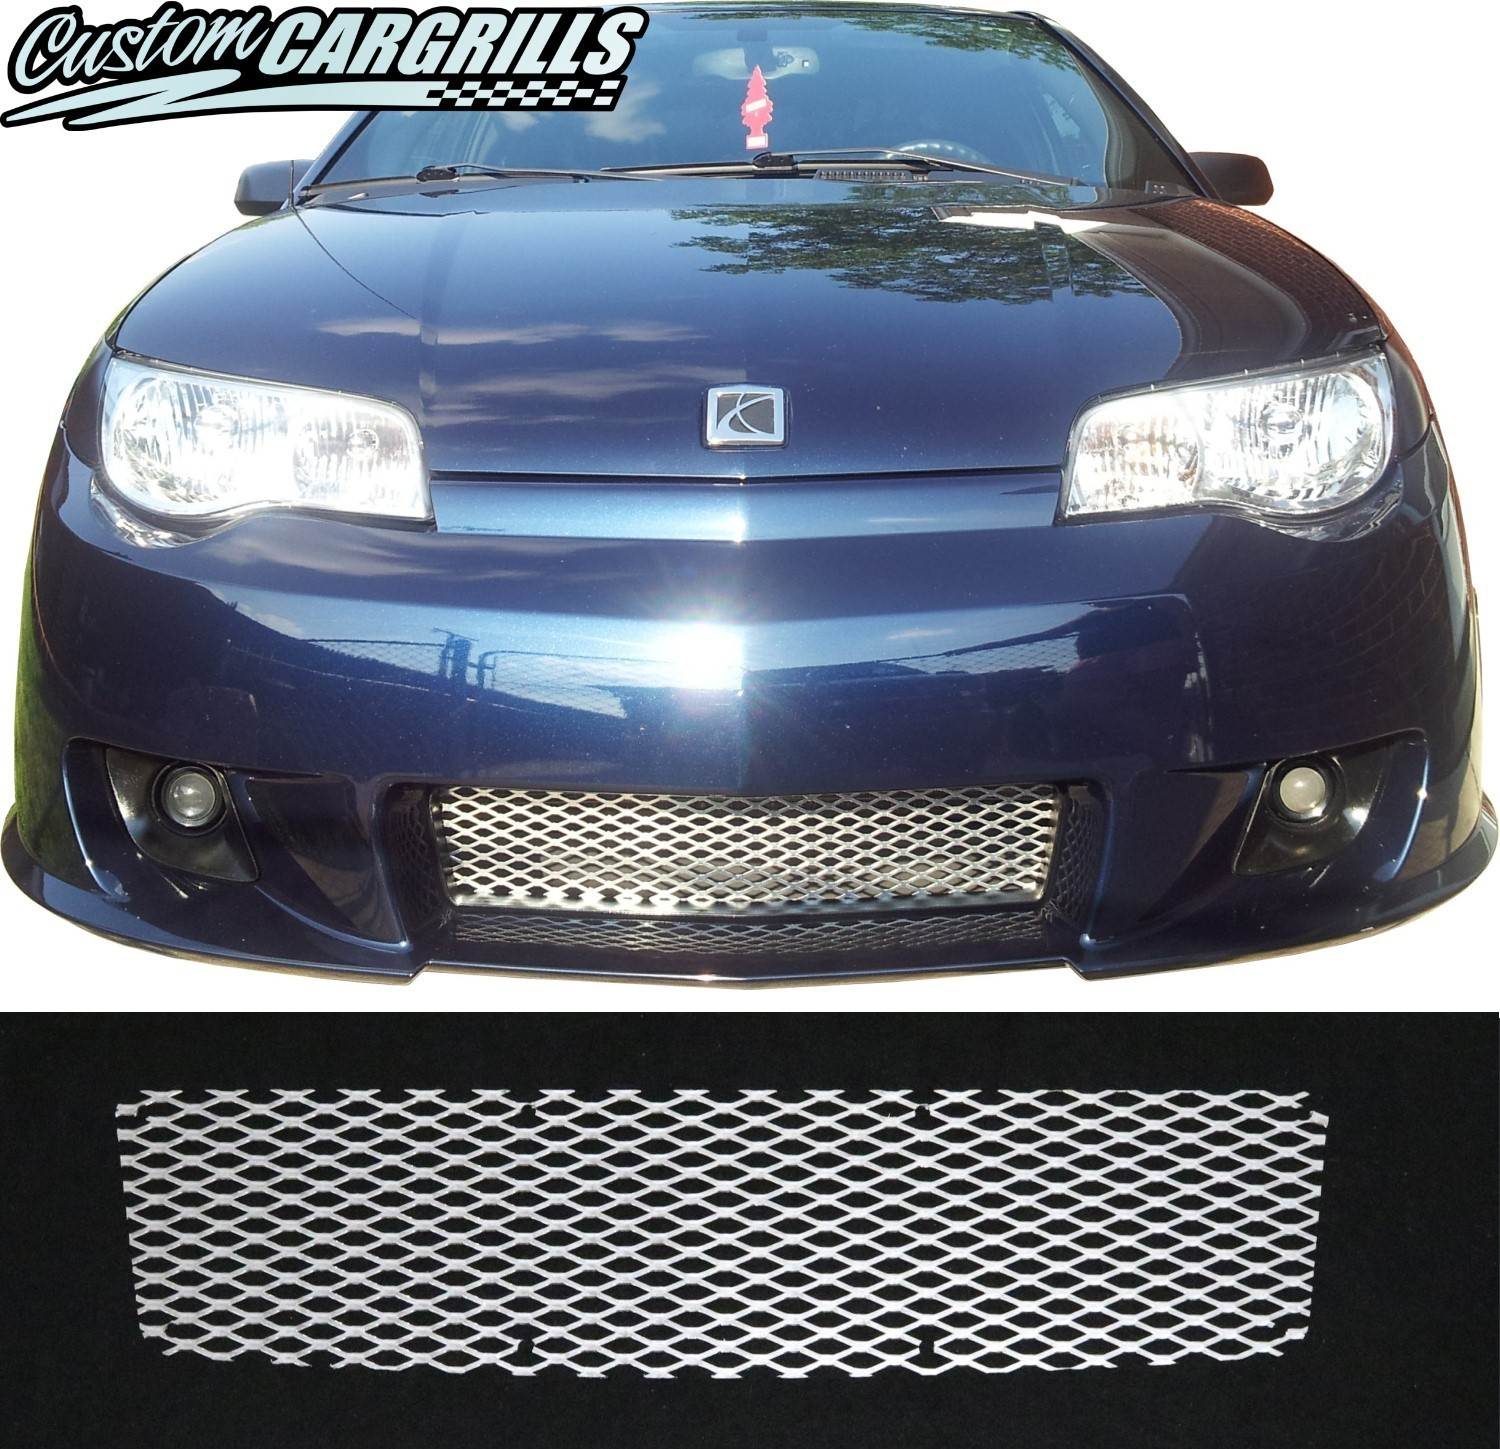 2004 07 saturn ion redline grill insert by customcargrills 2004 07 saturn ion redline mesh grill kit vanachro Image collections